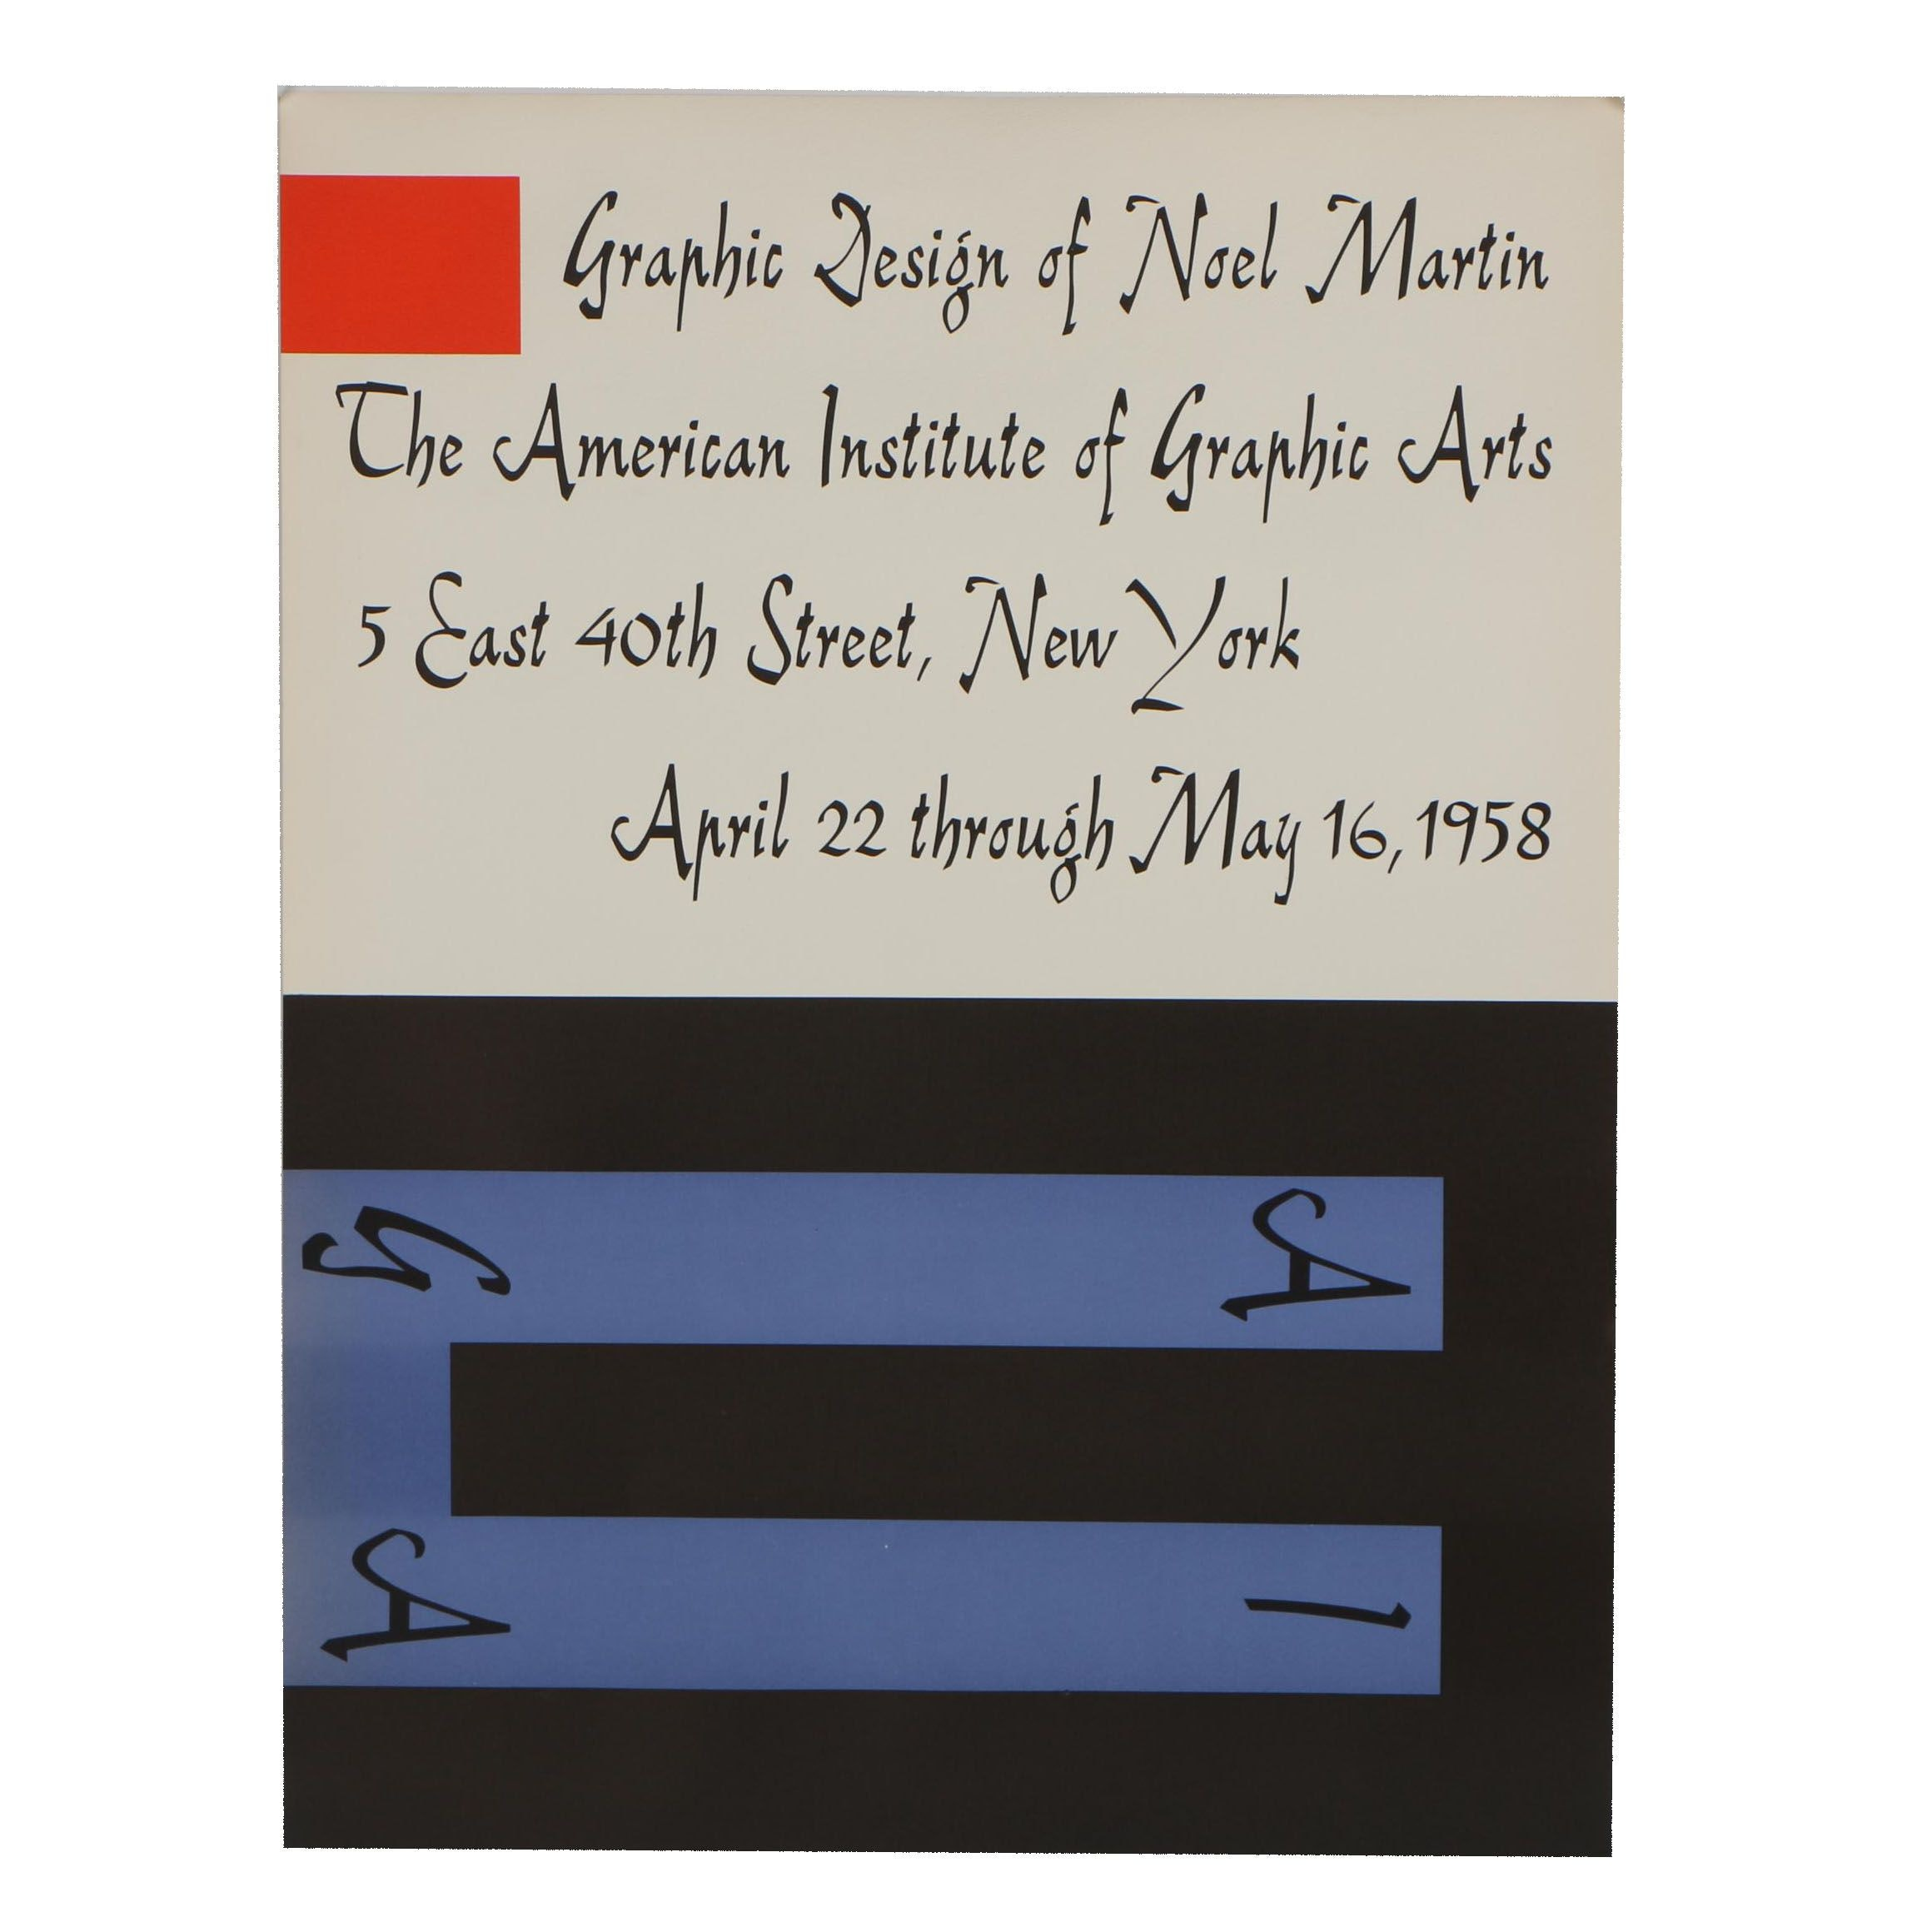 Exhibition Poster for the American Institute of Graphic Arts